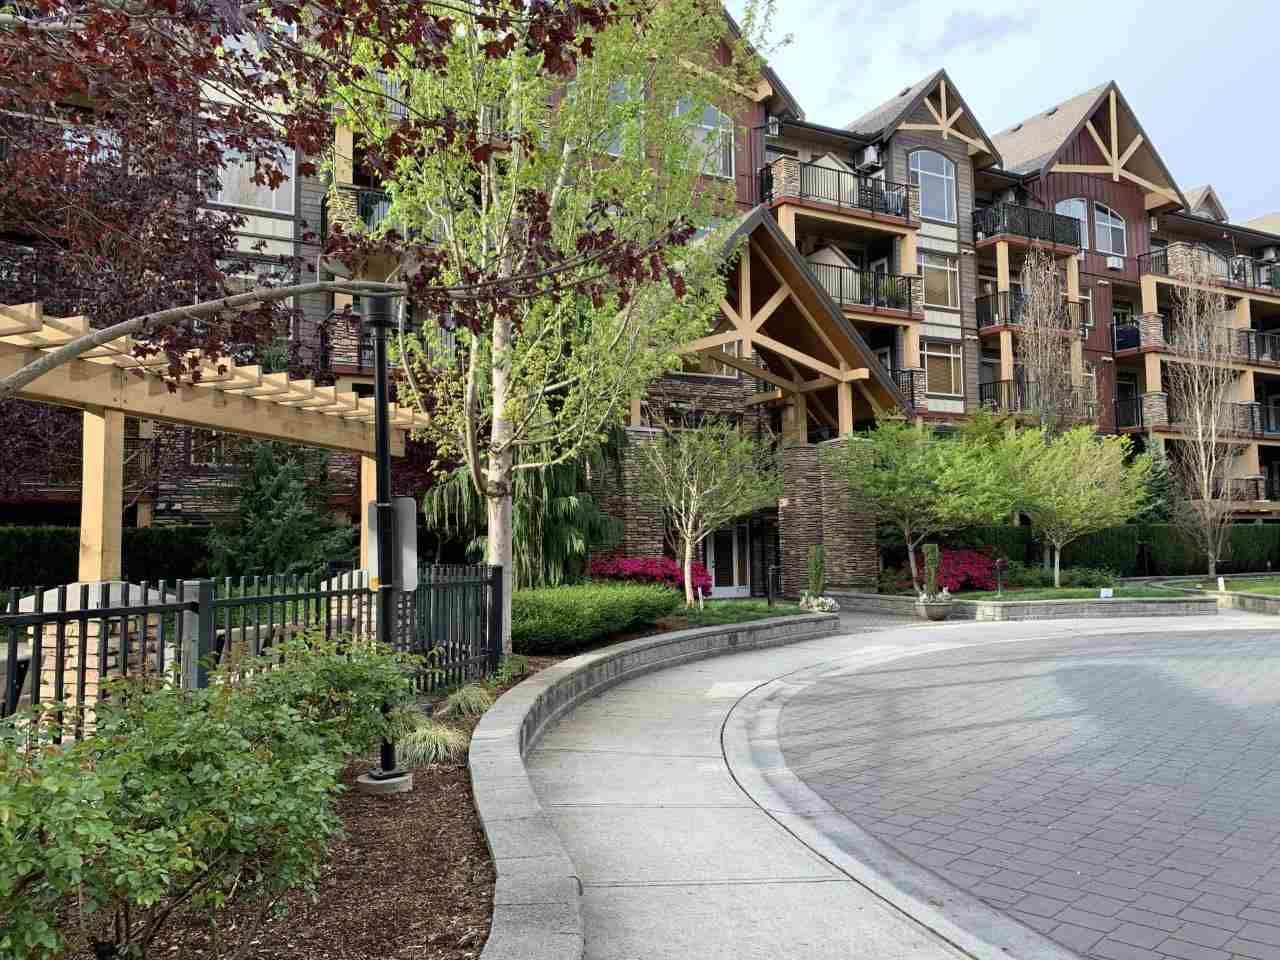 Main Photo: 569 8328 207A Street in Langley: Willoughby Heights Condo for sale : MLS®# R2573530